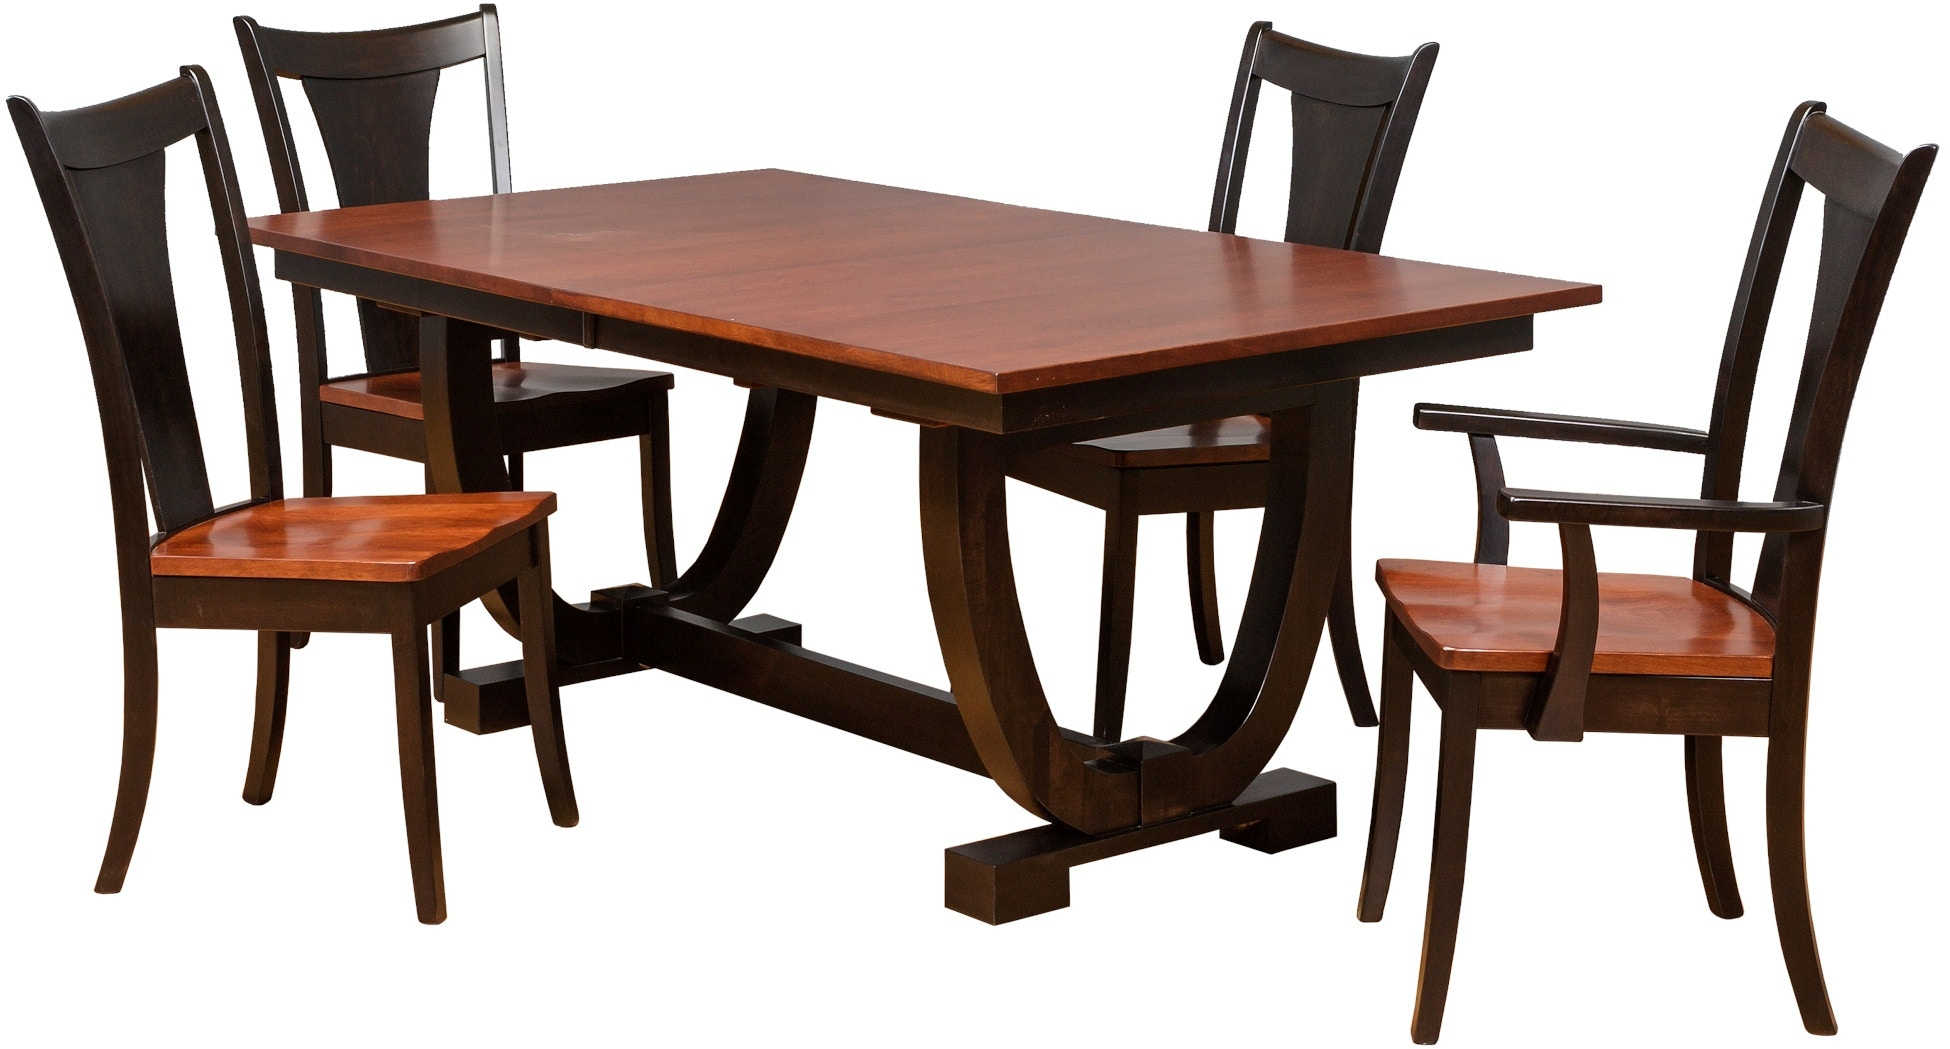 daniel s amish table and 8 chairs 42722 fal9pc gustafson s daniel s amish table and 8 chairs 42722 fal9pc